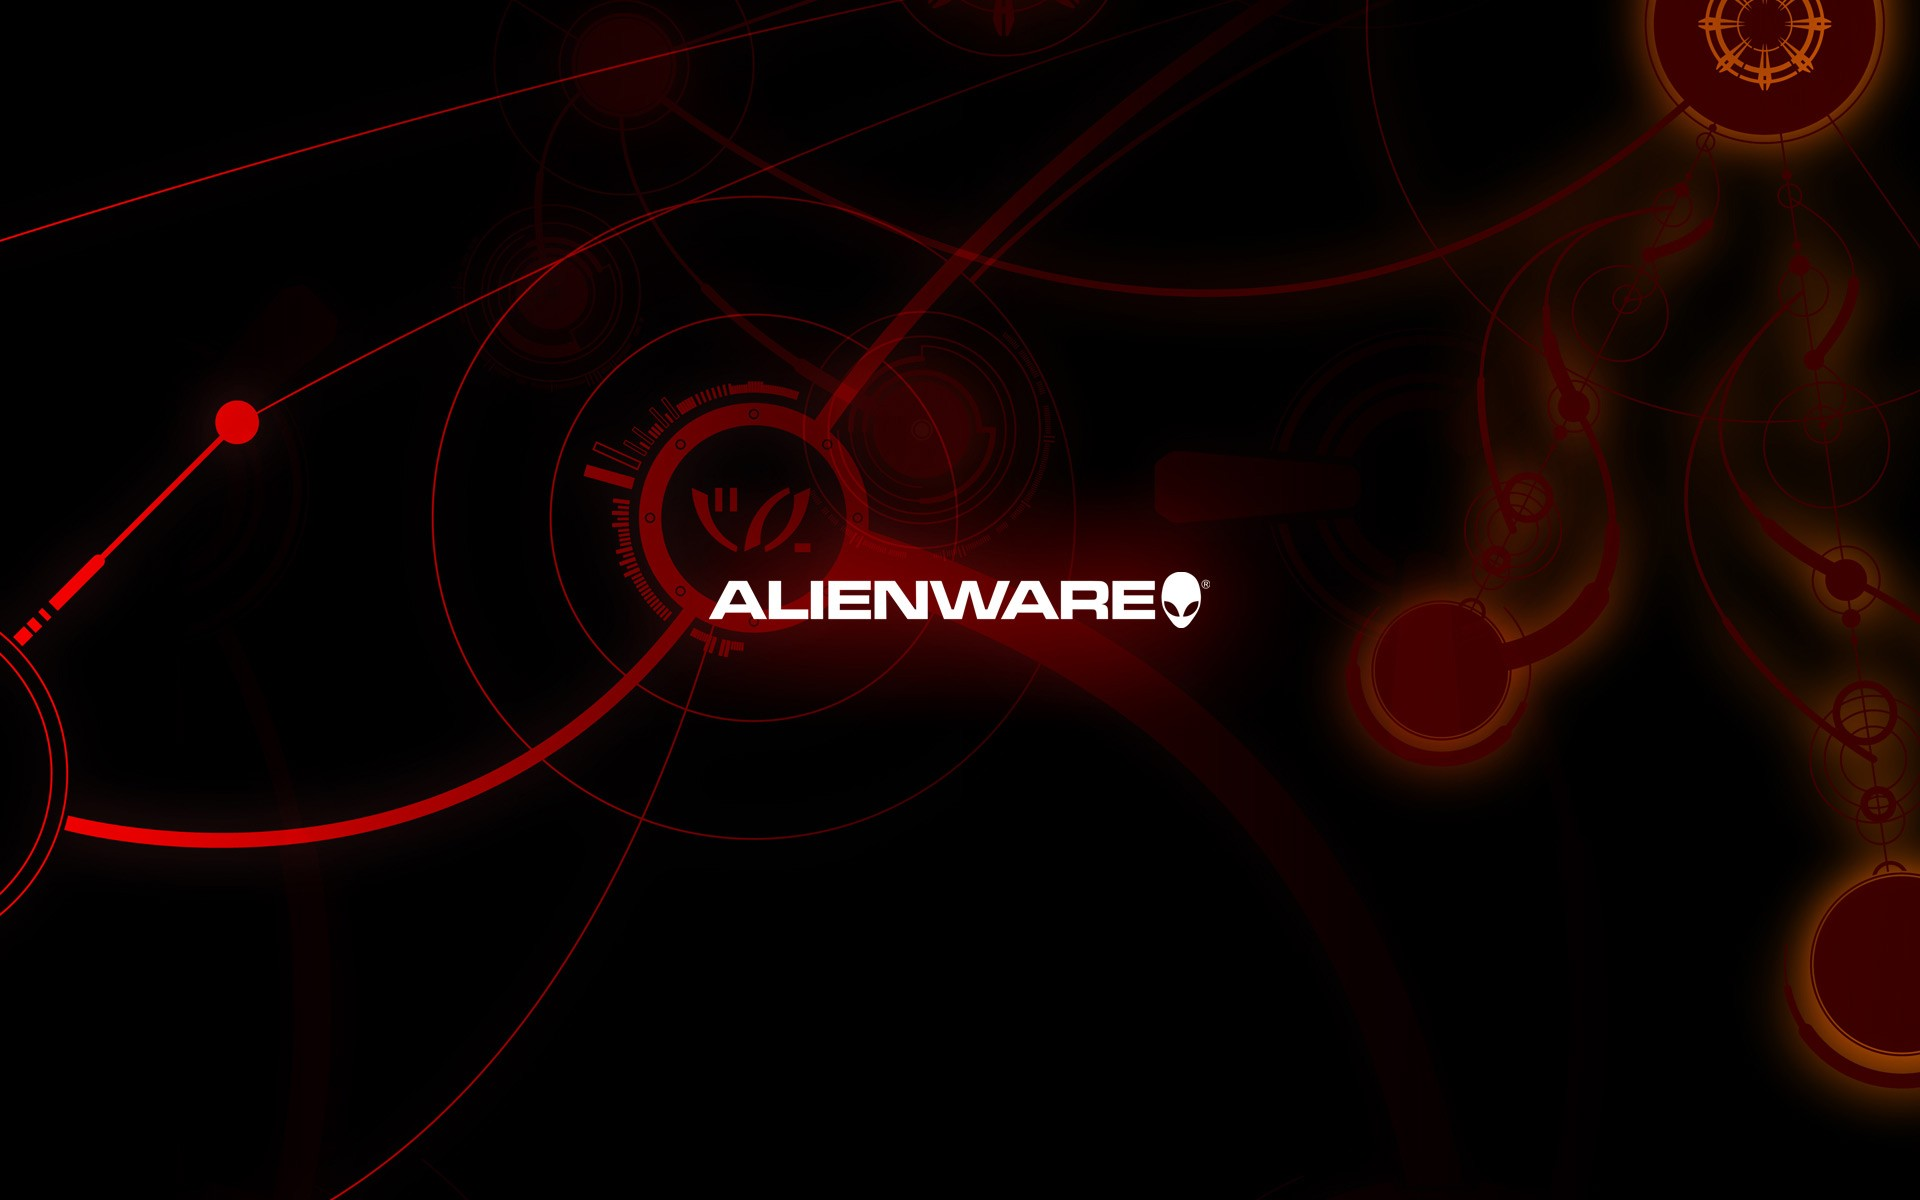 Alienware Wallpaper Red   1786089 1920x1200